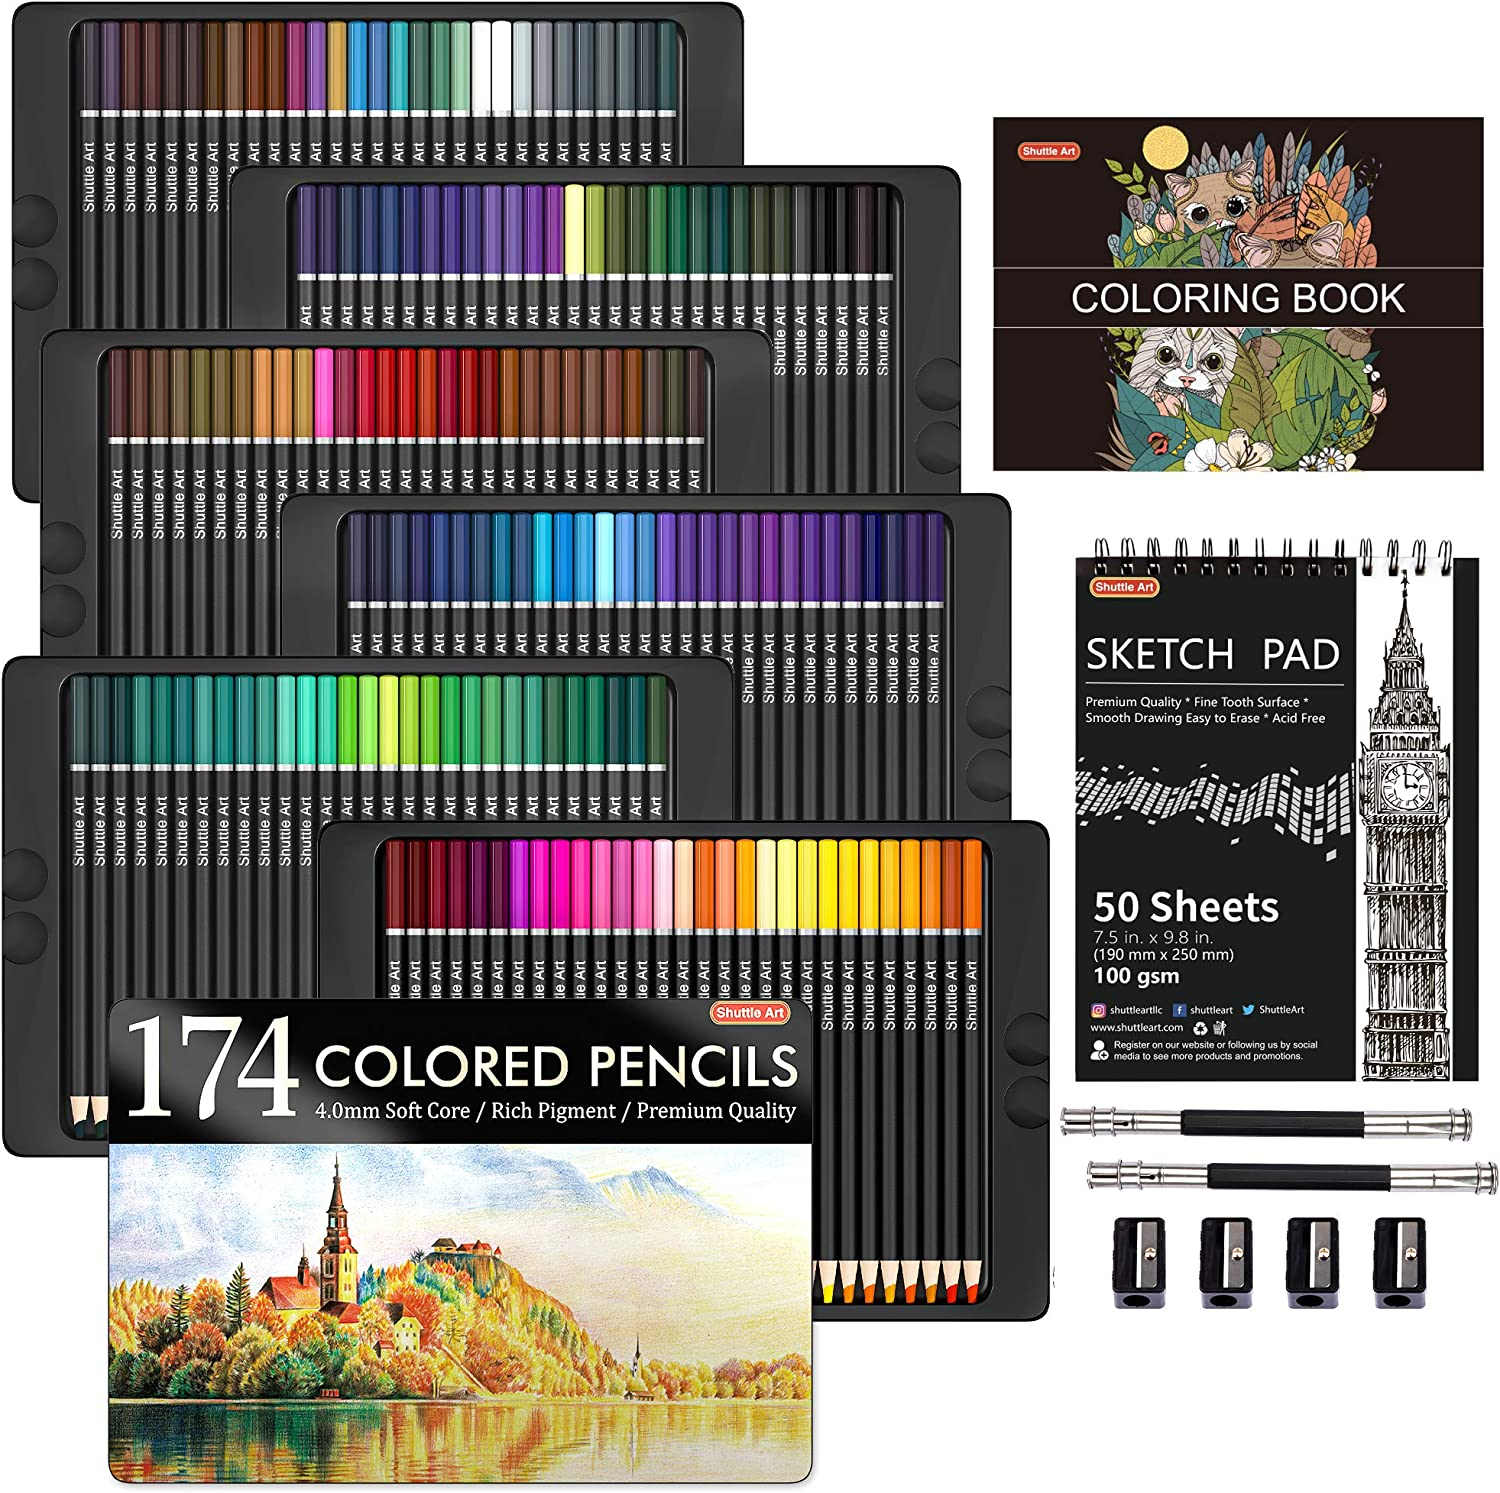 174 Colors Professional Colored Pencils, Shuttle Art Soft Core Coloring Pencils Set with 1 Coloring Book,1 Sketch Pad, 4 Sharpener, 2 Pencil Extender, Perfect for Artists Kids Adults Coloring, Drawing